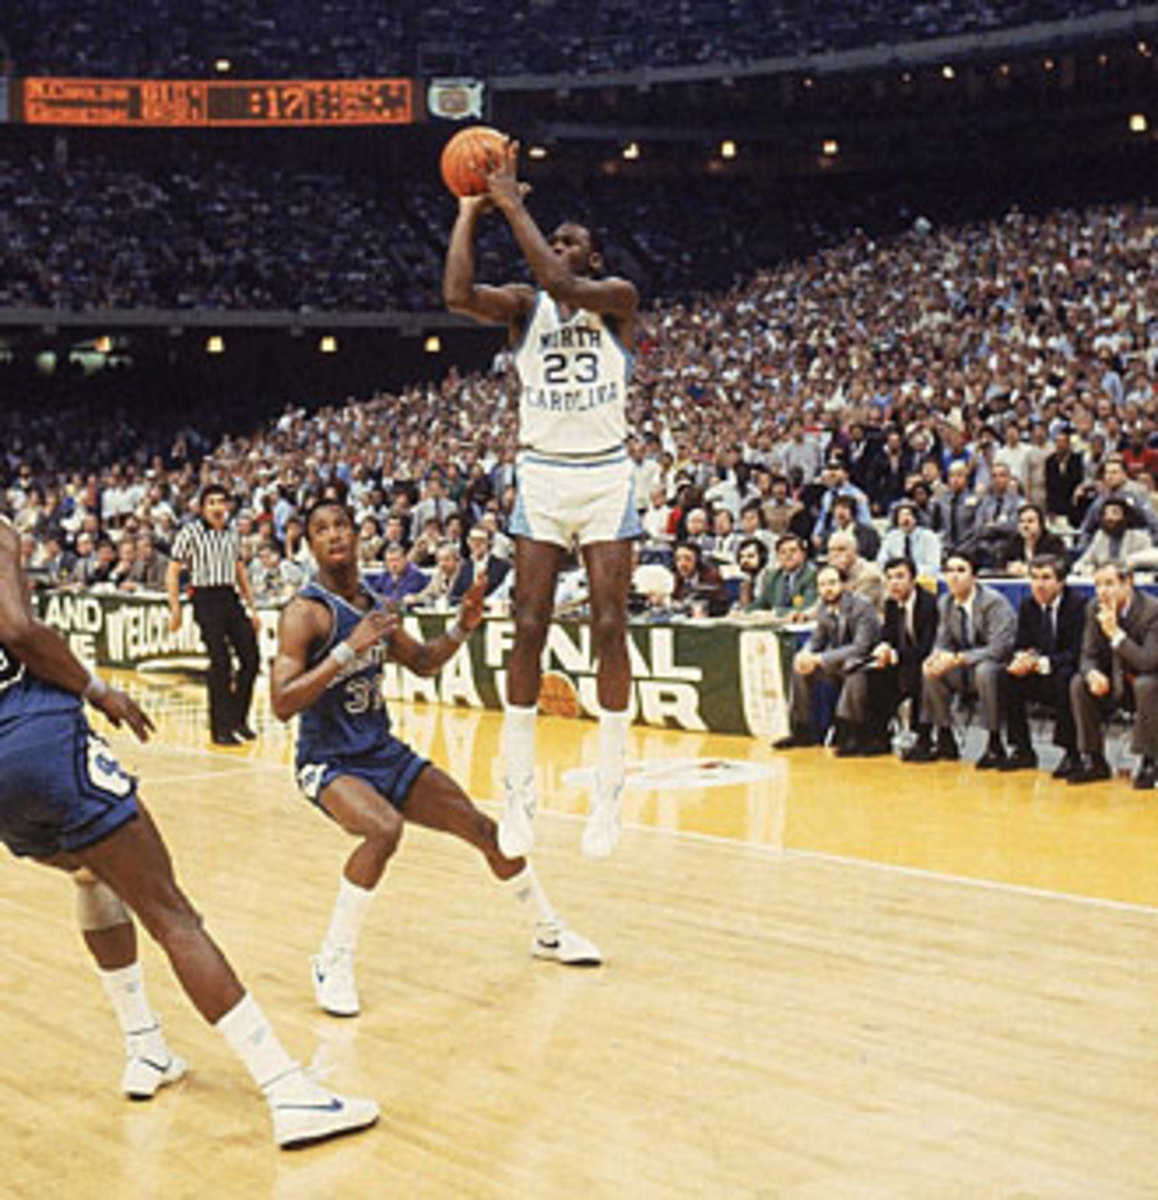 With Smith looking on, a freshman named Michael Jordan hit the shot that won the 1982 NCAA championship.